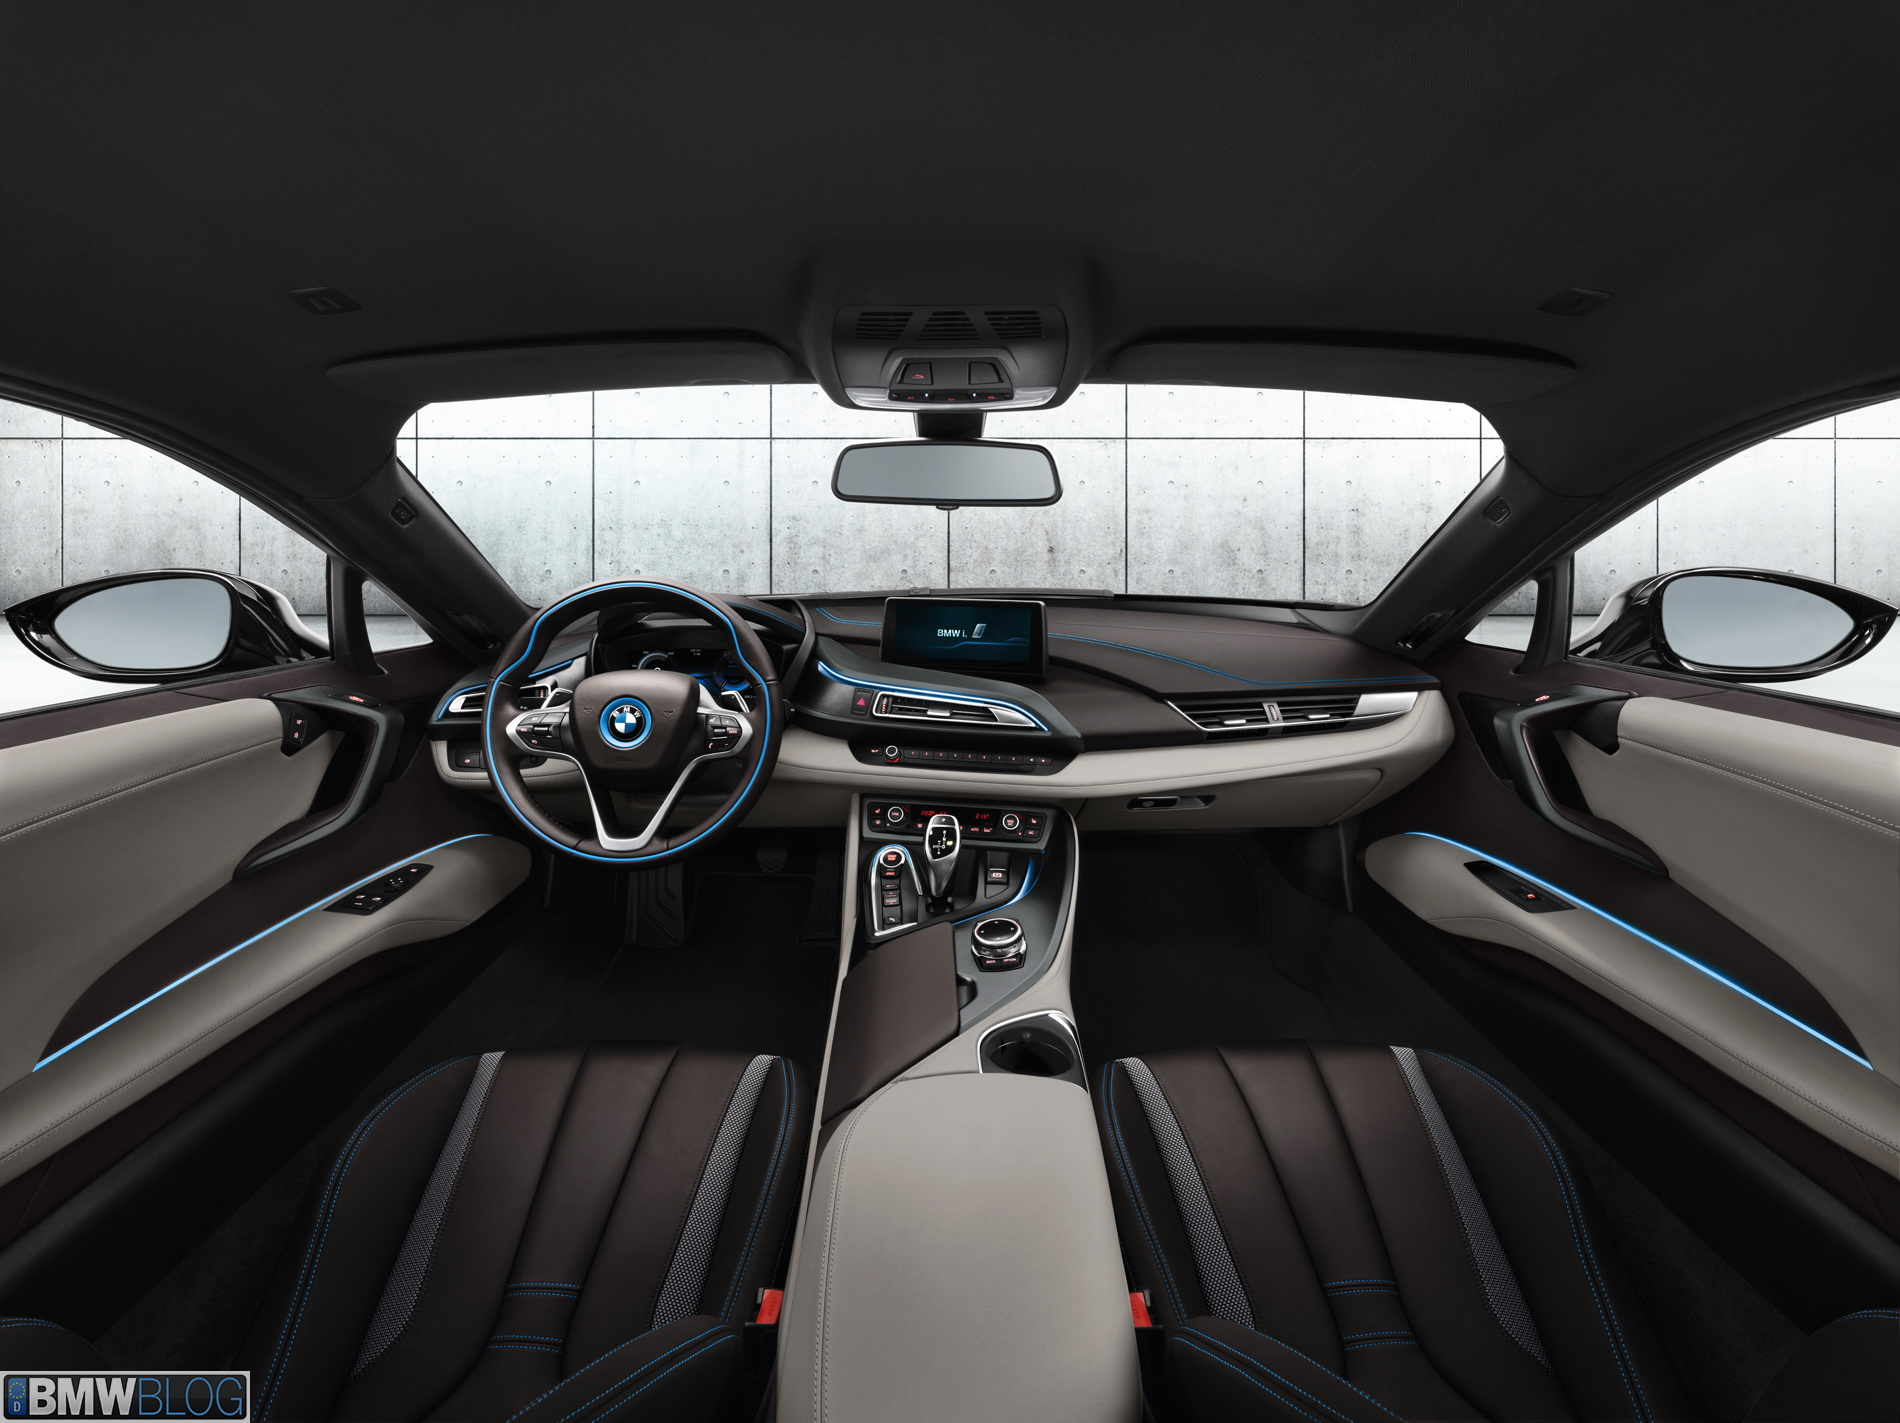 2014 Bmw I8 Wallpapers 26